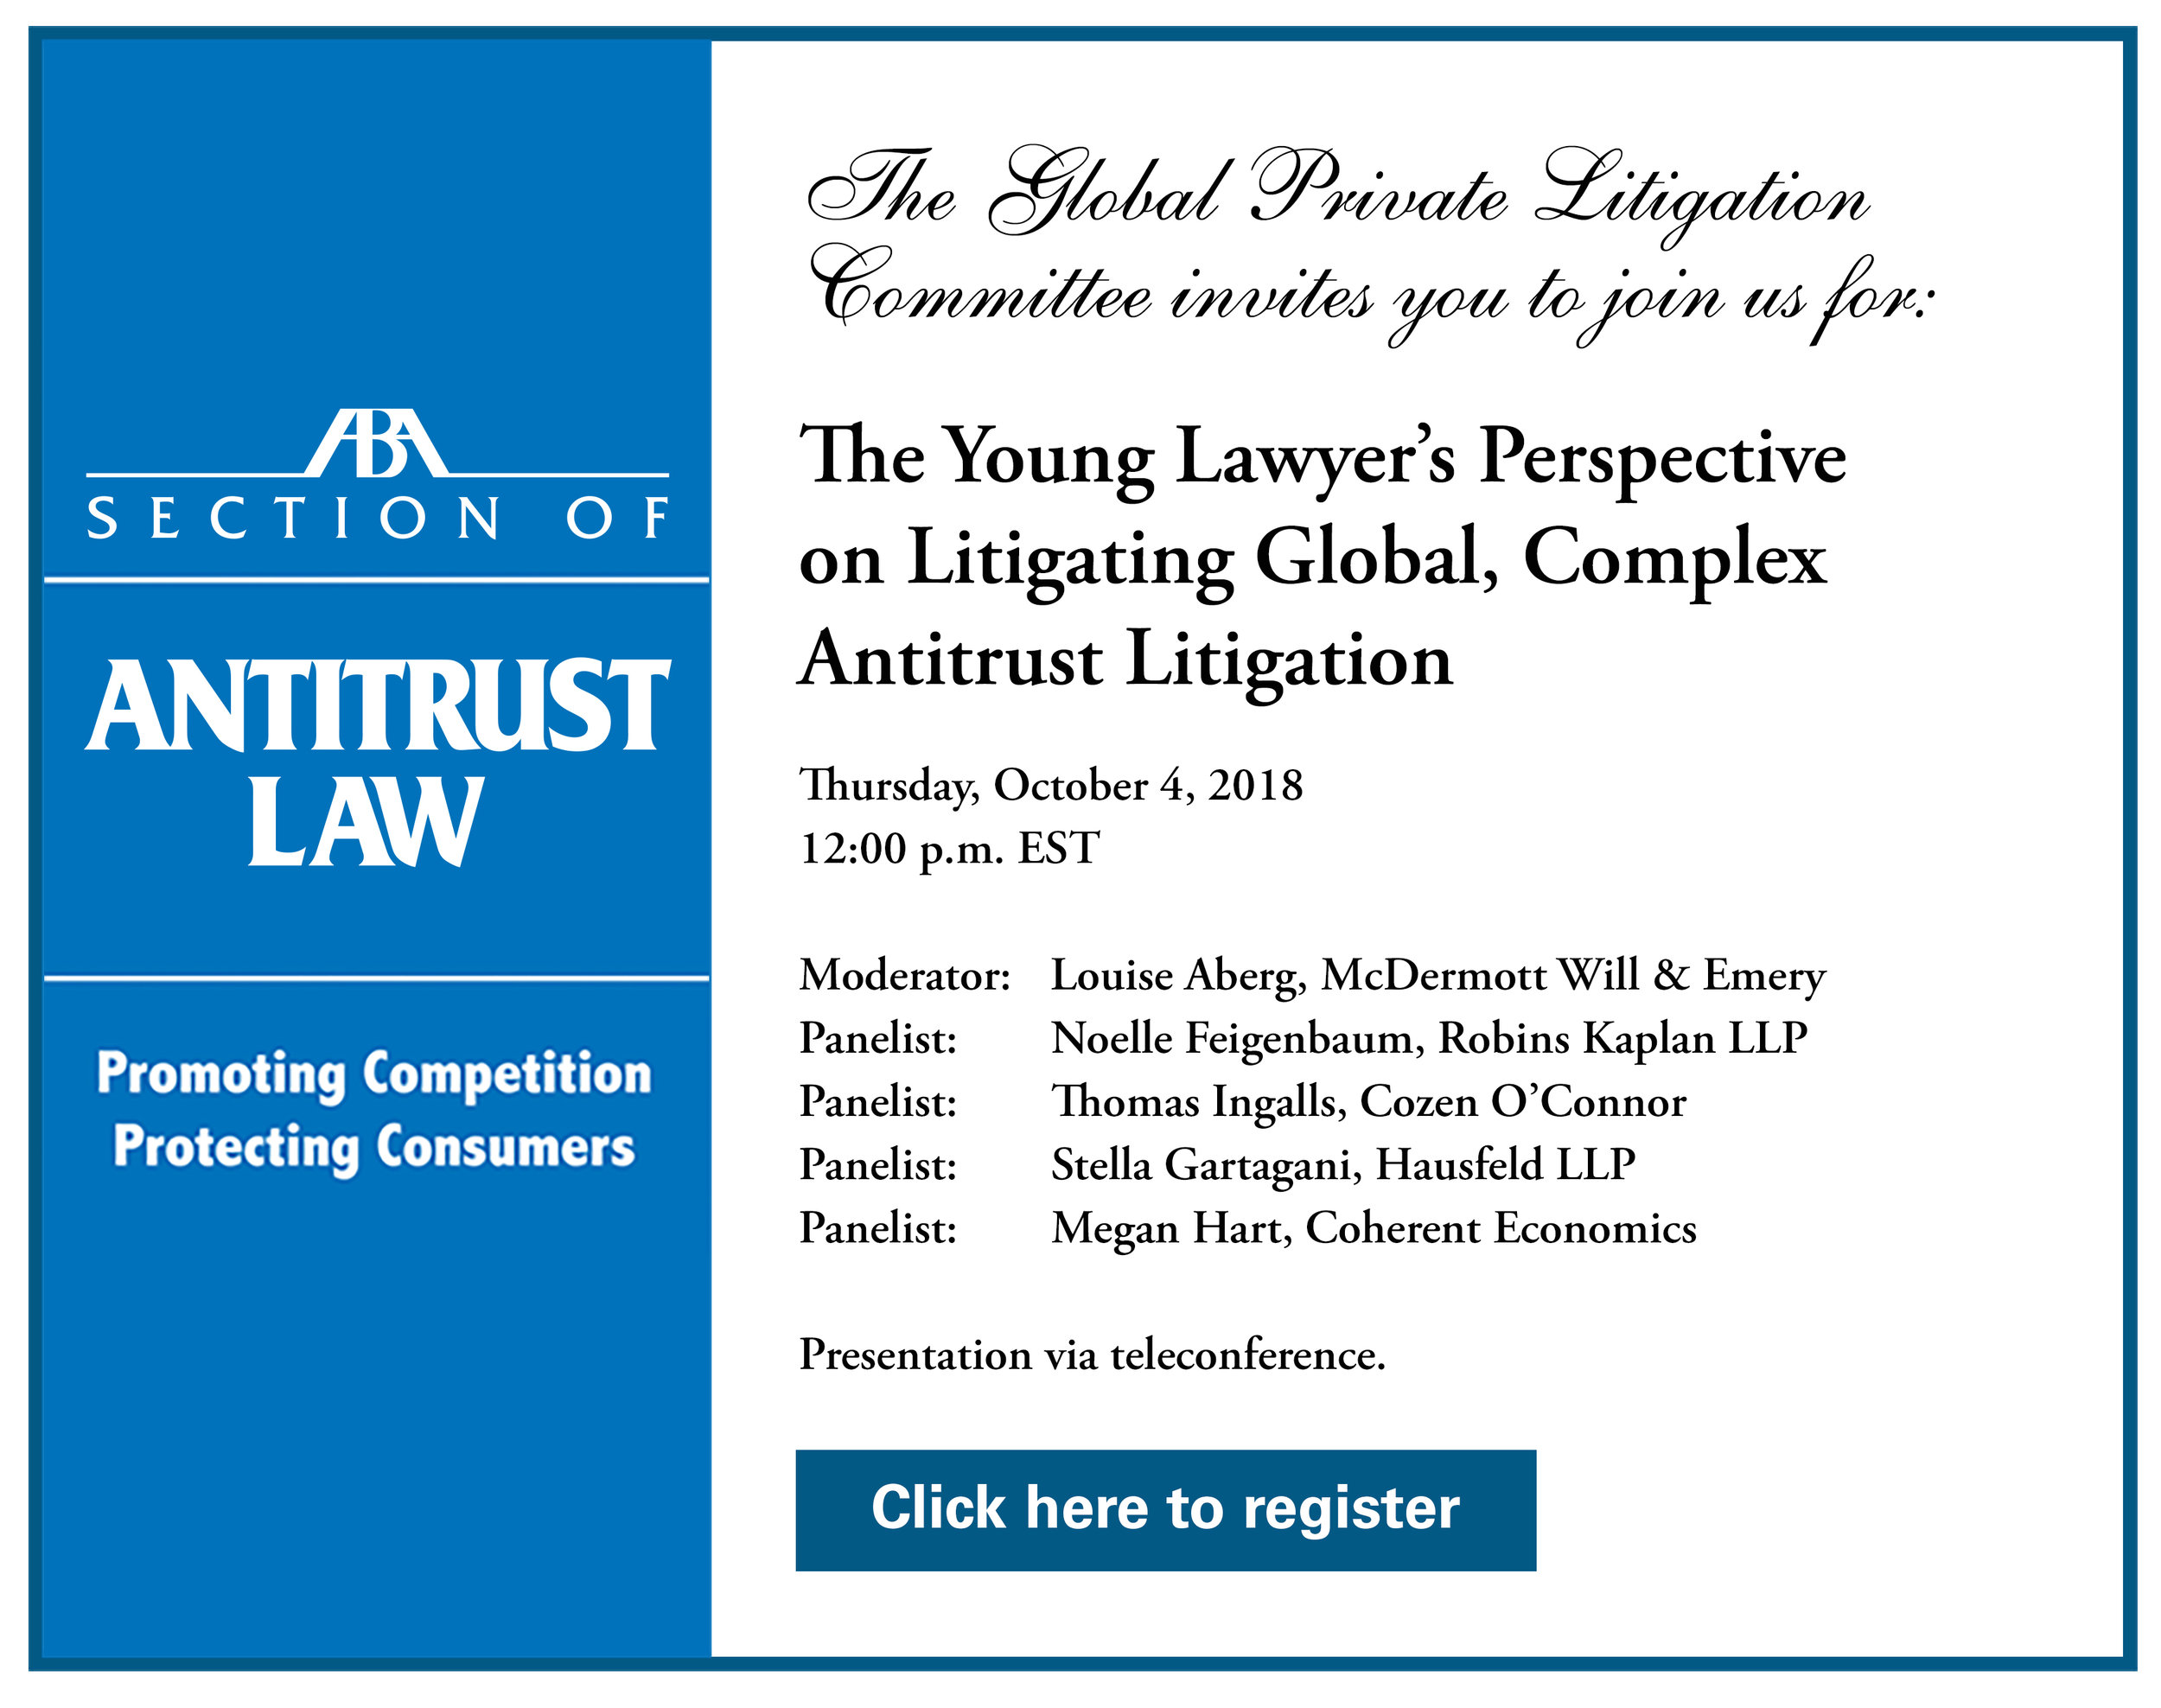 ABA_Antitrust_Law_Young Lawyer Event.jpg